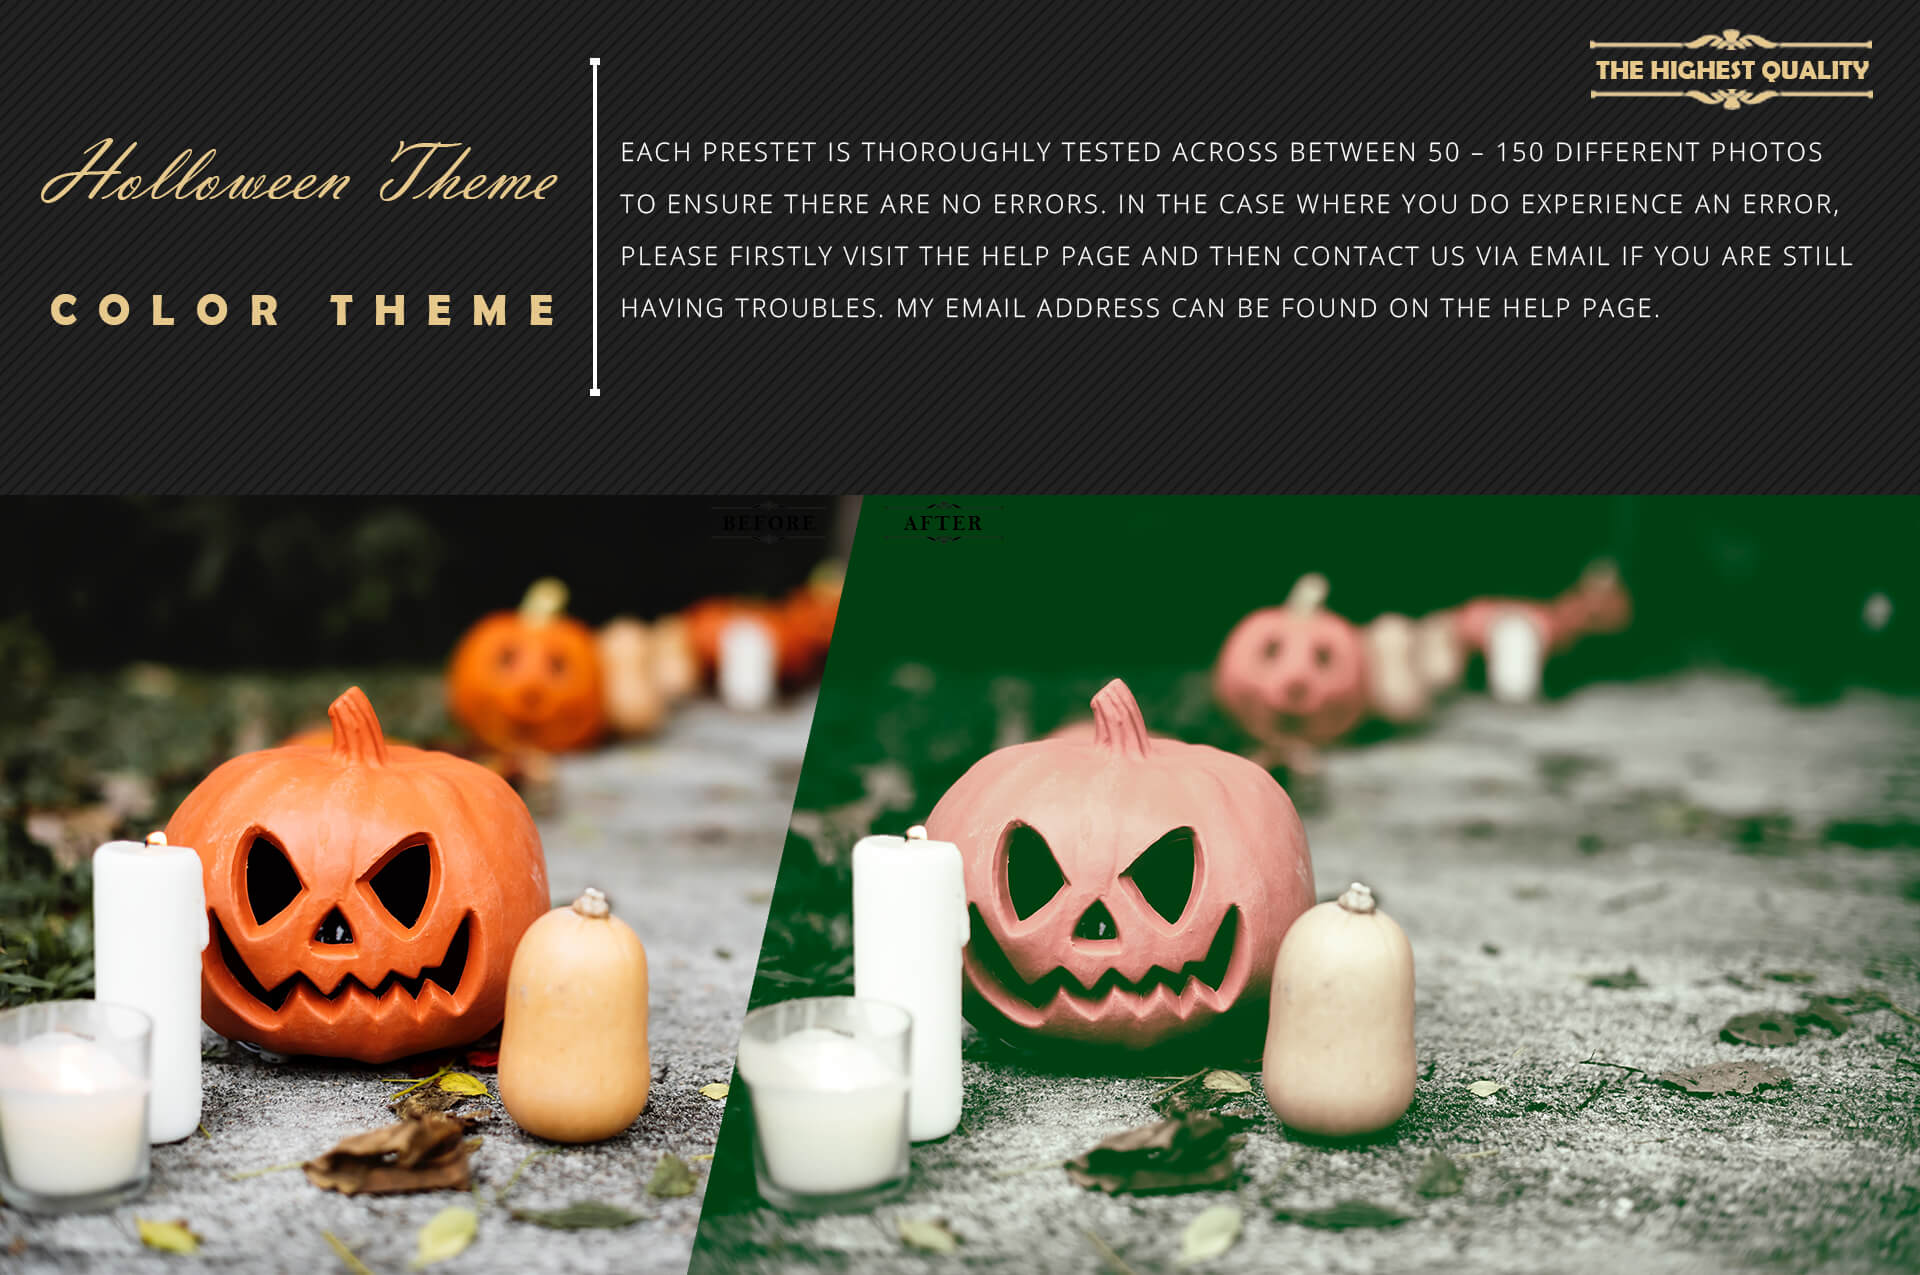 Halloween Theme Collection Color Grading Lightroom presets example image 6